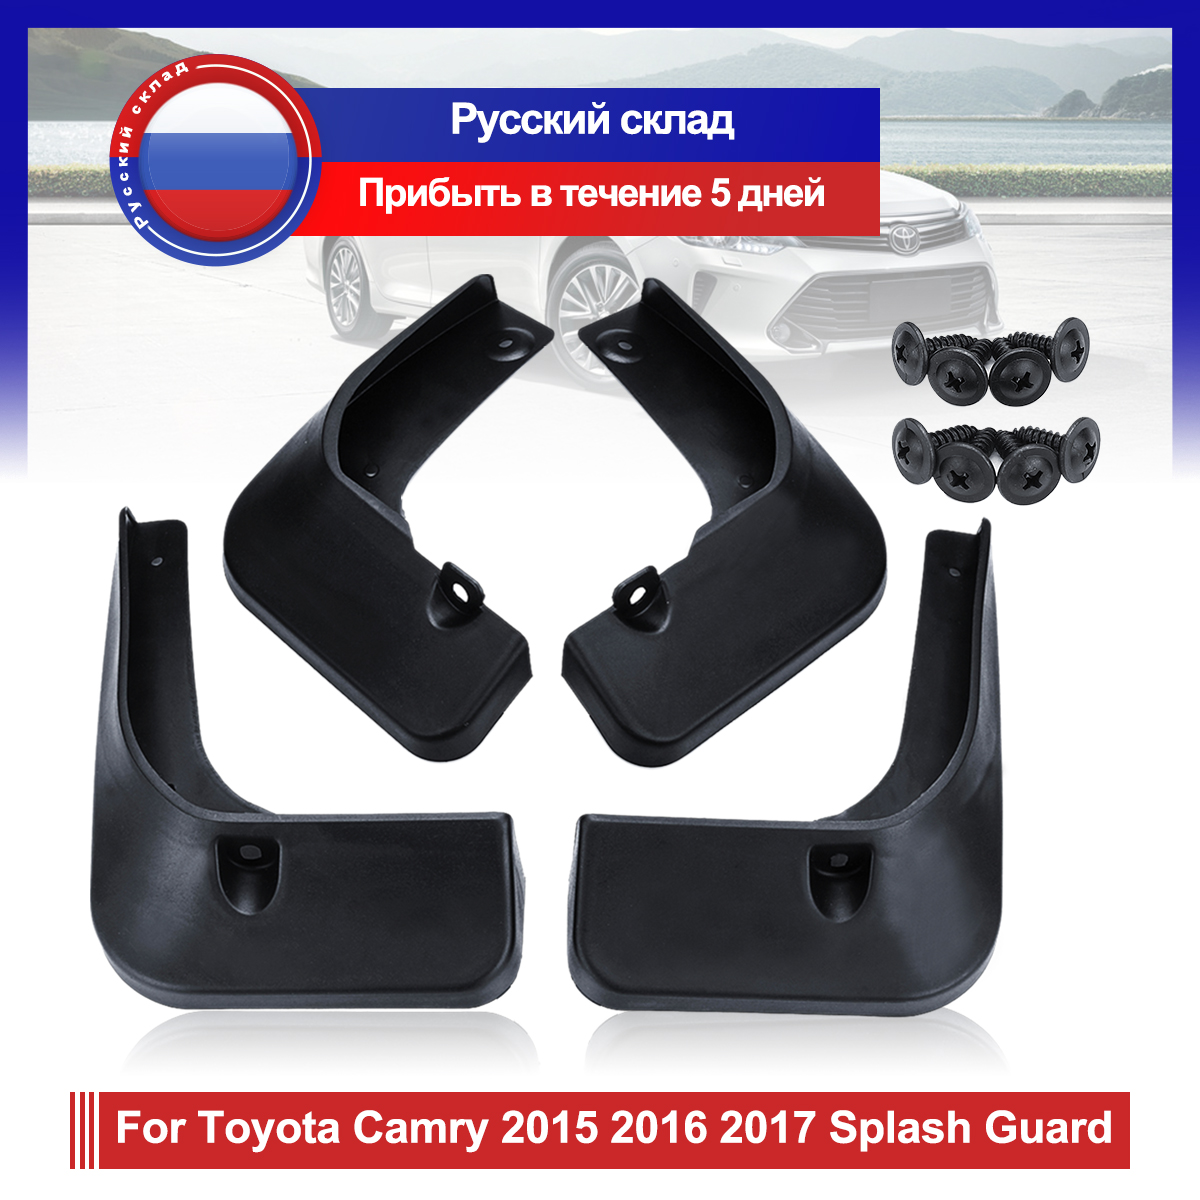 Car Mud Flaps For Toyota Camry 2015 2016 2017 Mudguards Splash Guards Fender Flares Mudflaps Accessories image